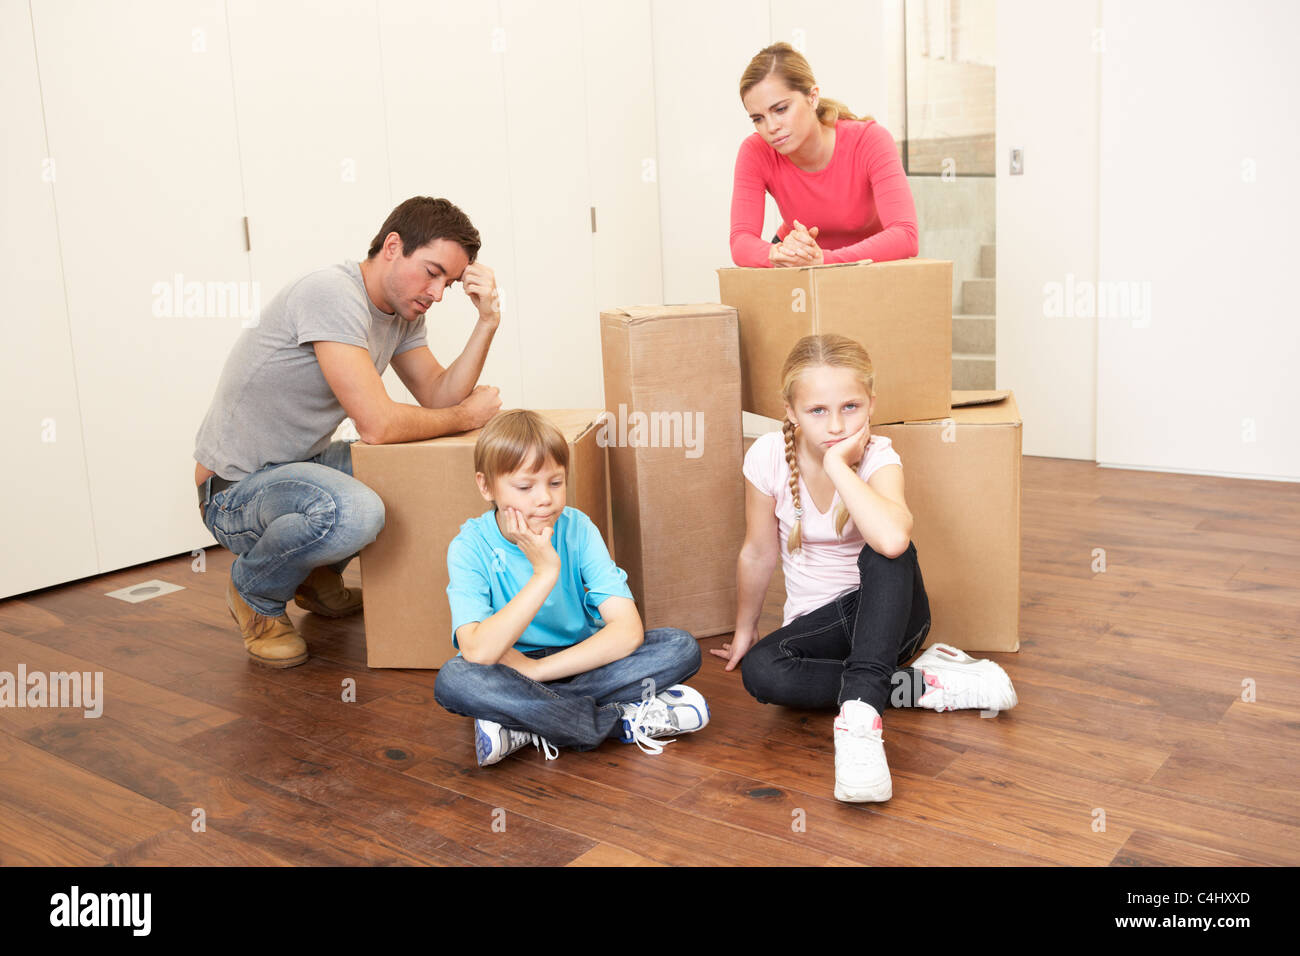 Young family looking upset among boxes - Stock Image